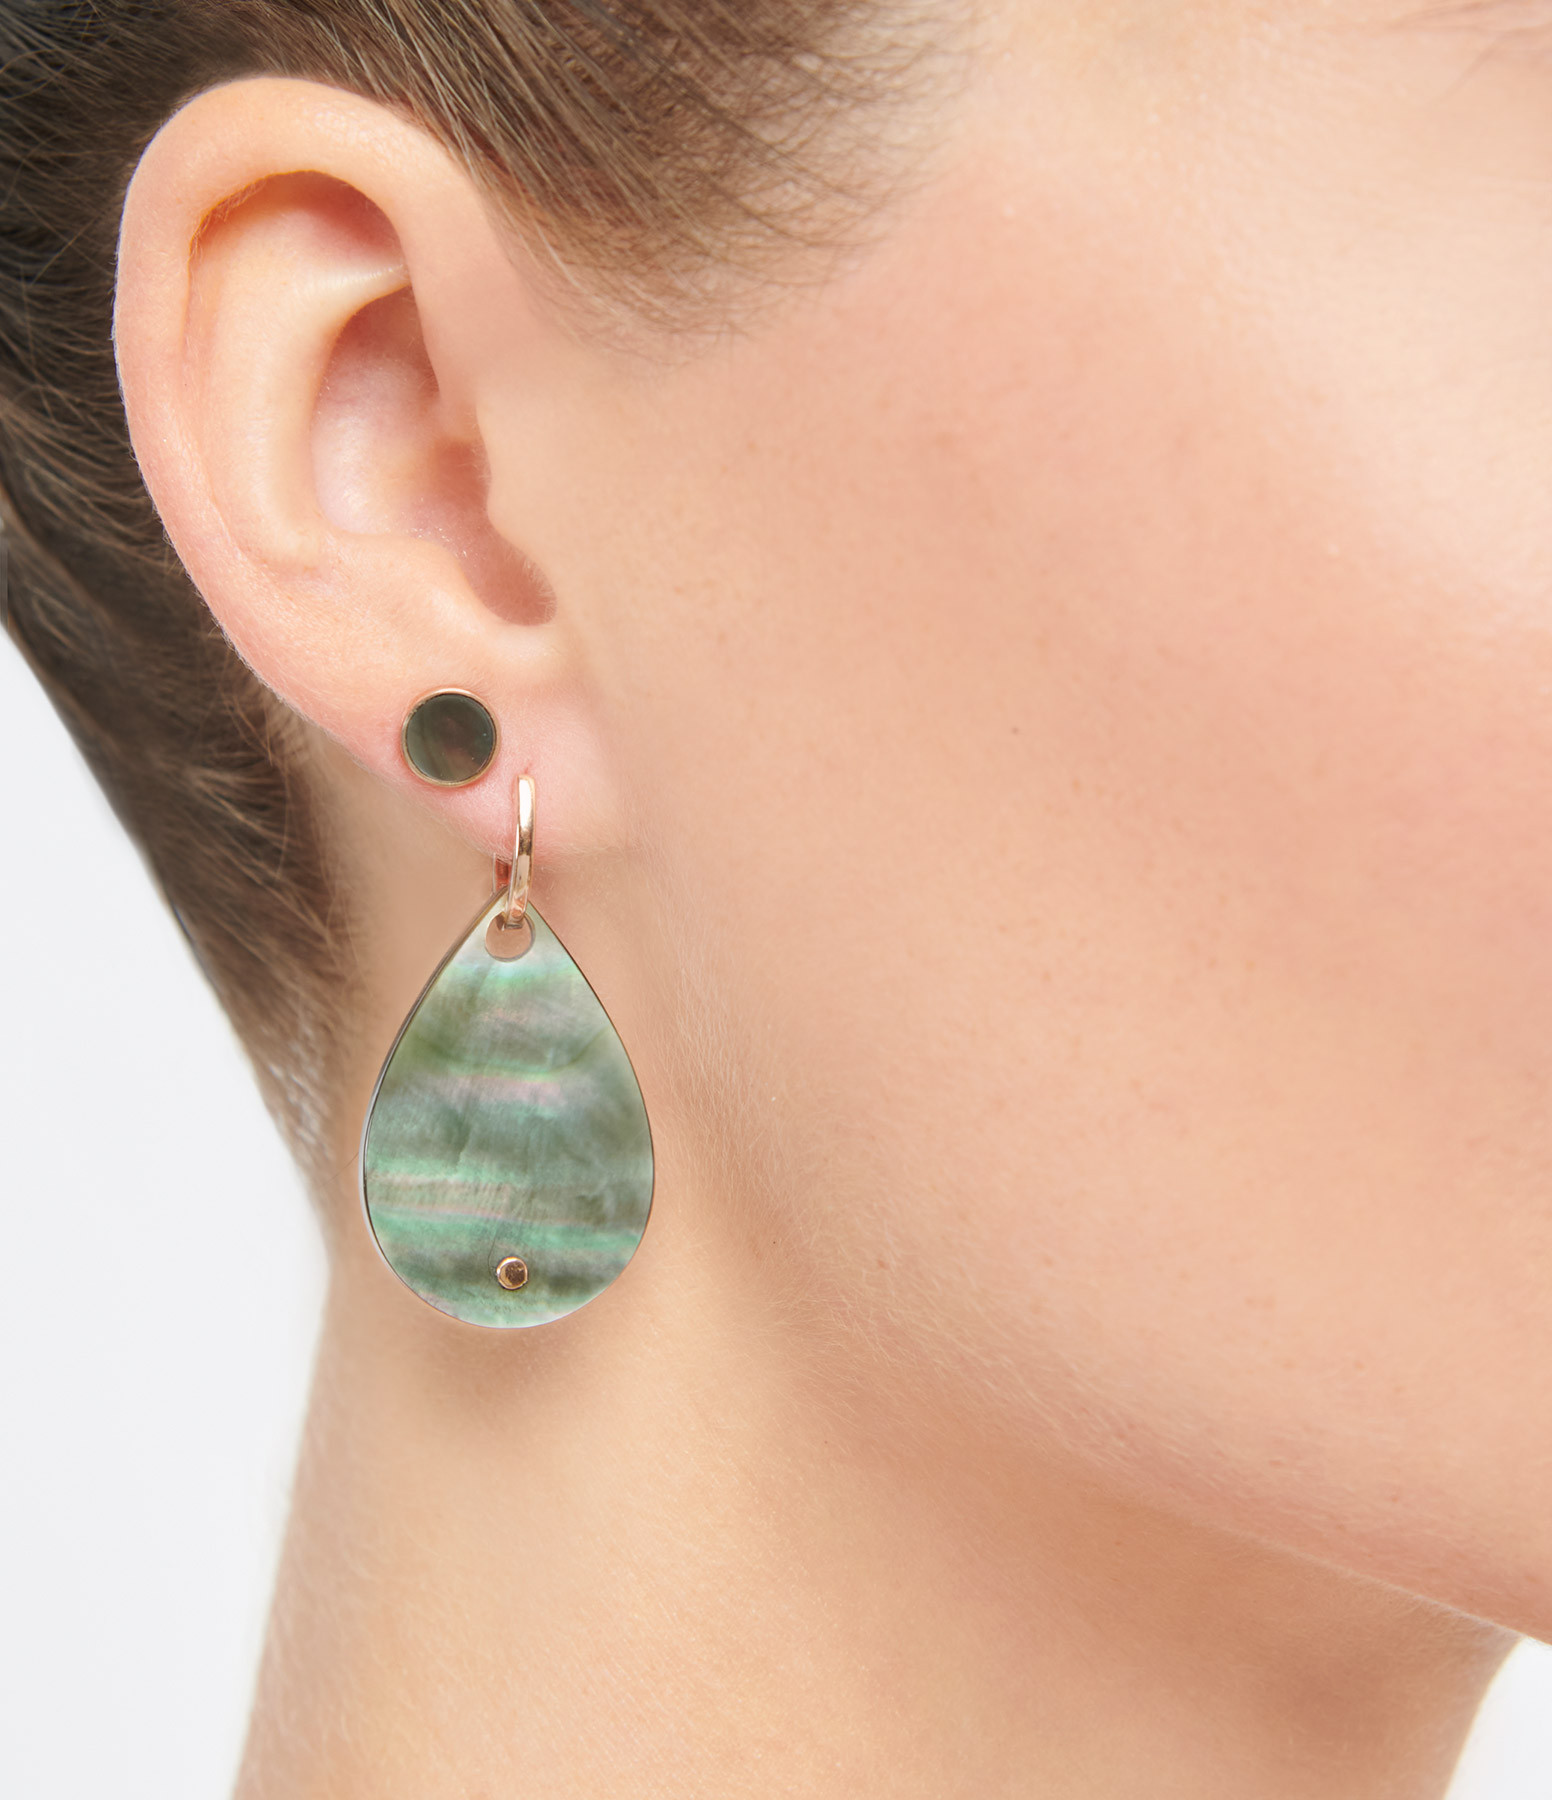 GINETTE NY - Boucles d'oreilles Bliss Black Mop Or Rose